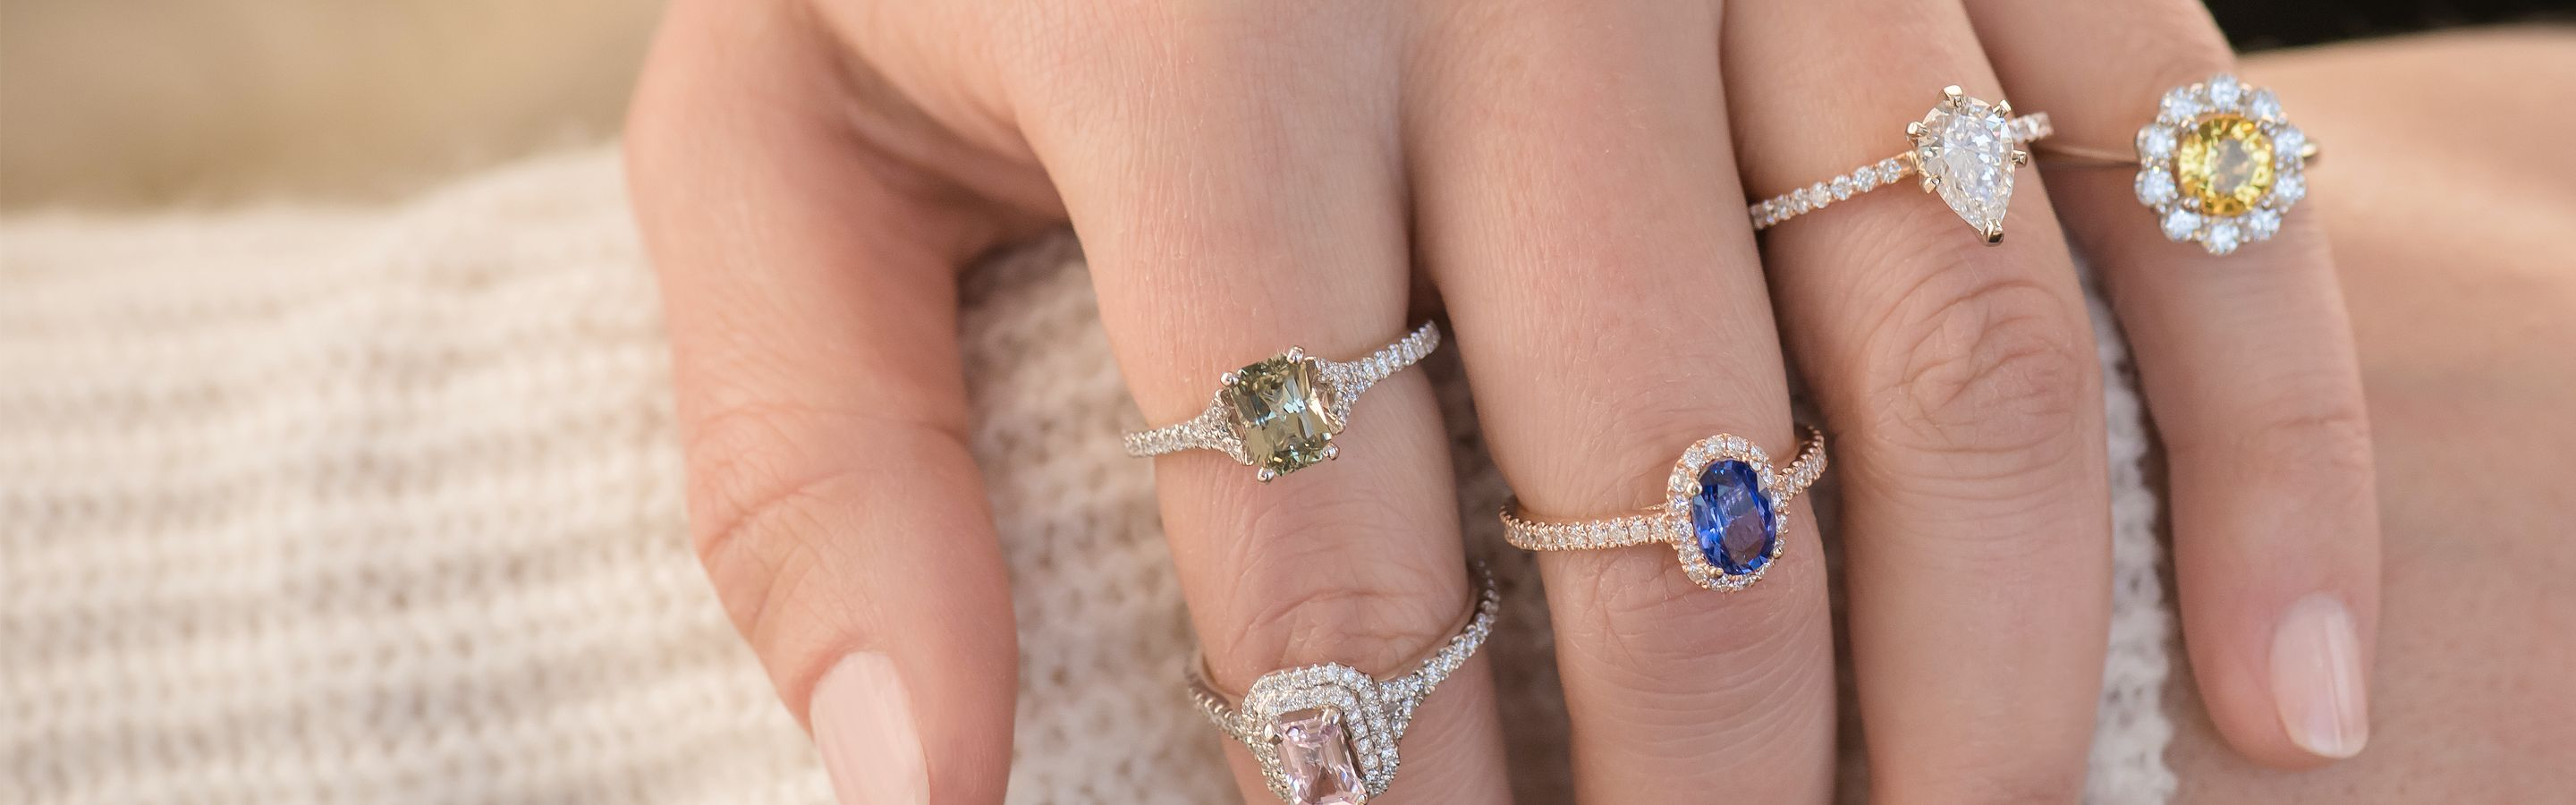 whats her ring style - Wedding Ring Ceremony